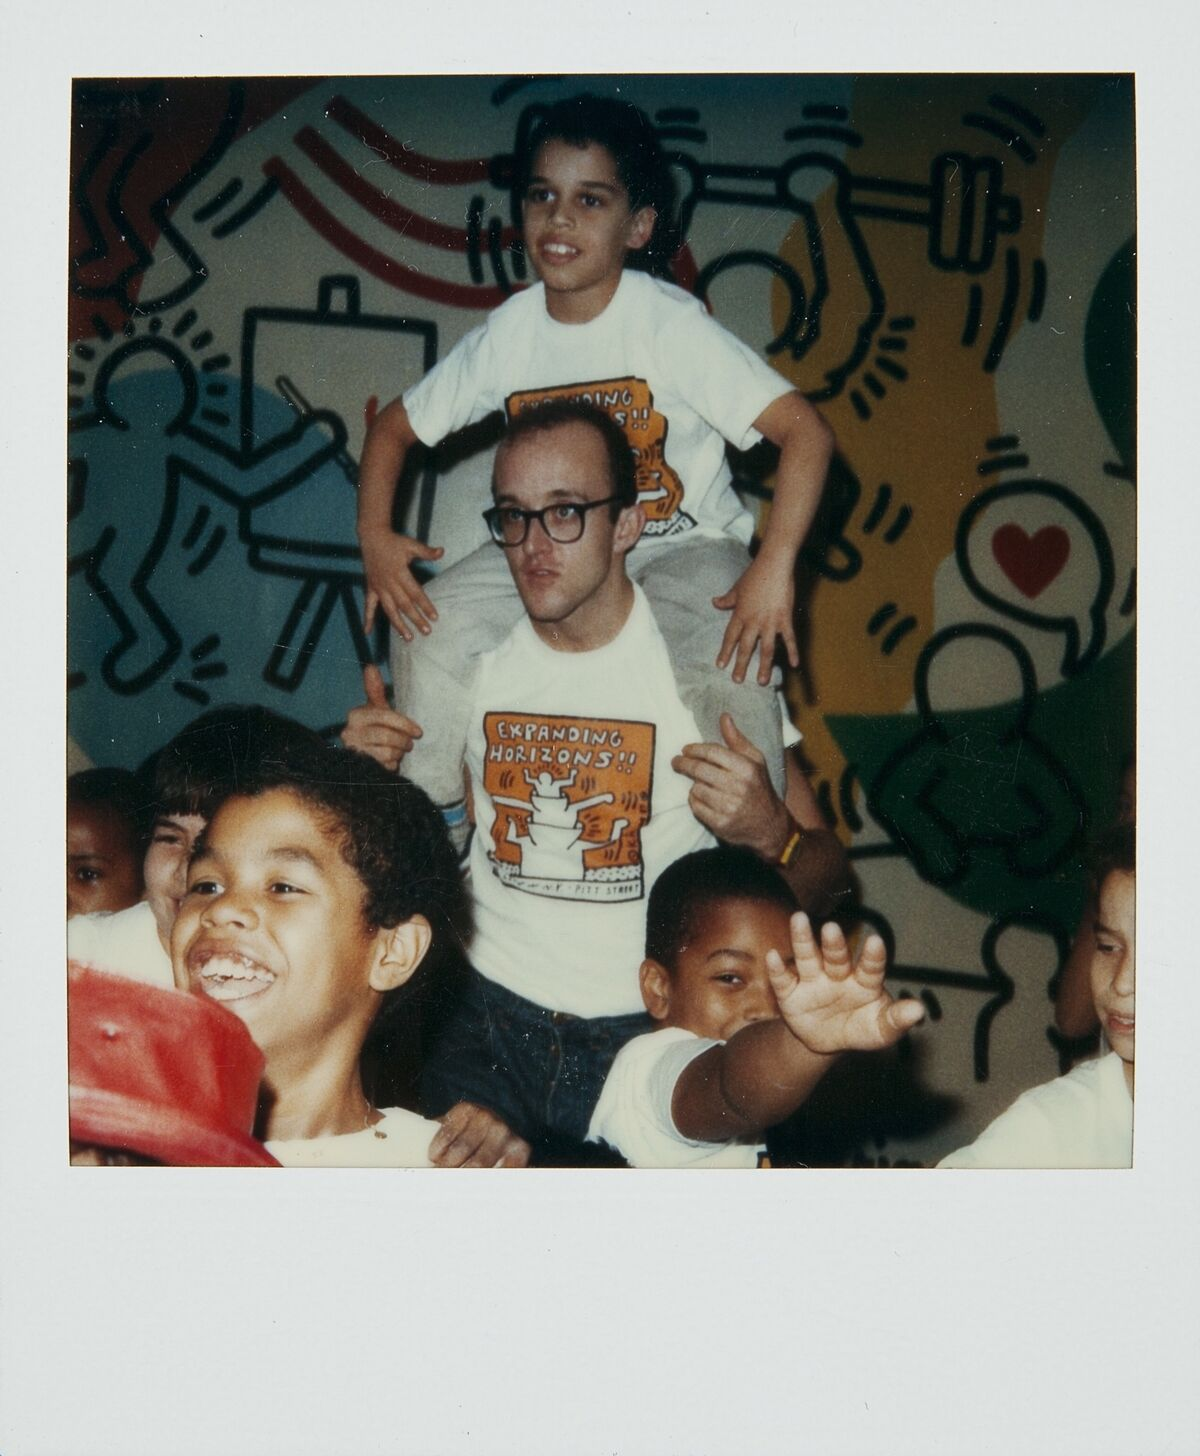 Polaroid of Keith Haring with members of the Boy's Club, Pitt Street, New York City, 1987. © Keith Haring Foundation. Courtesy of The Keith Haring Foundation Archives.